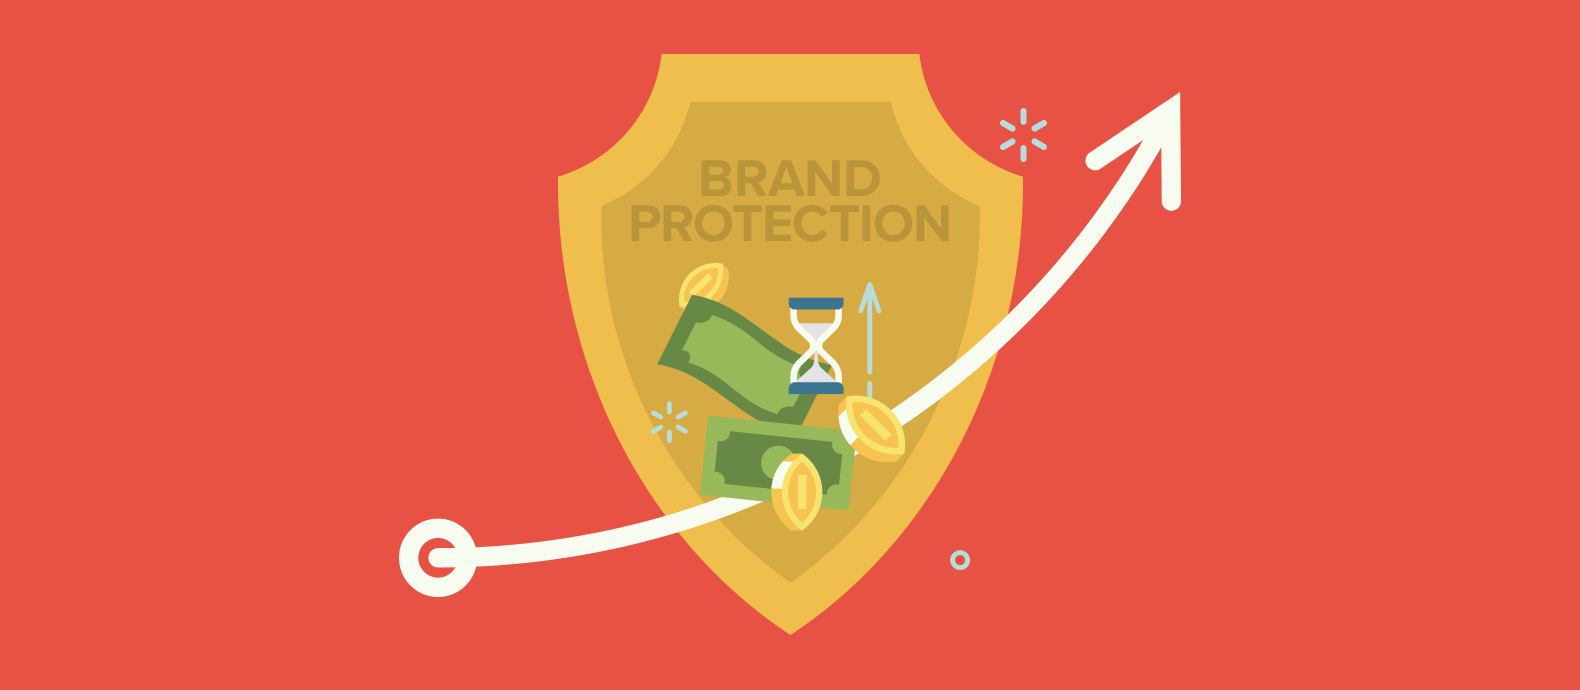 Why brand protection is important for growth